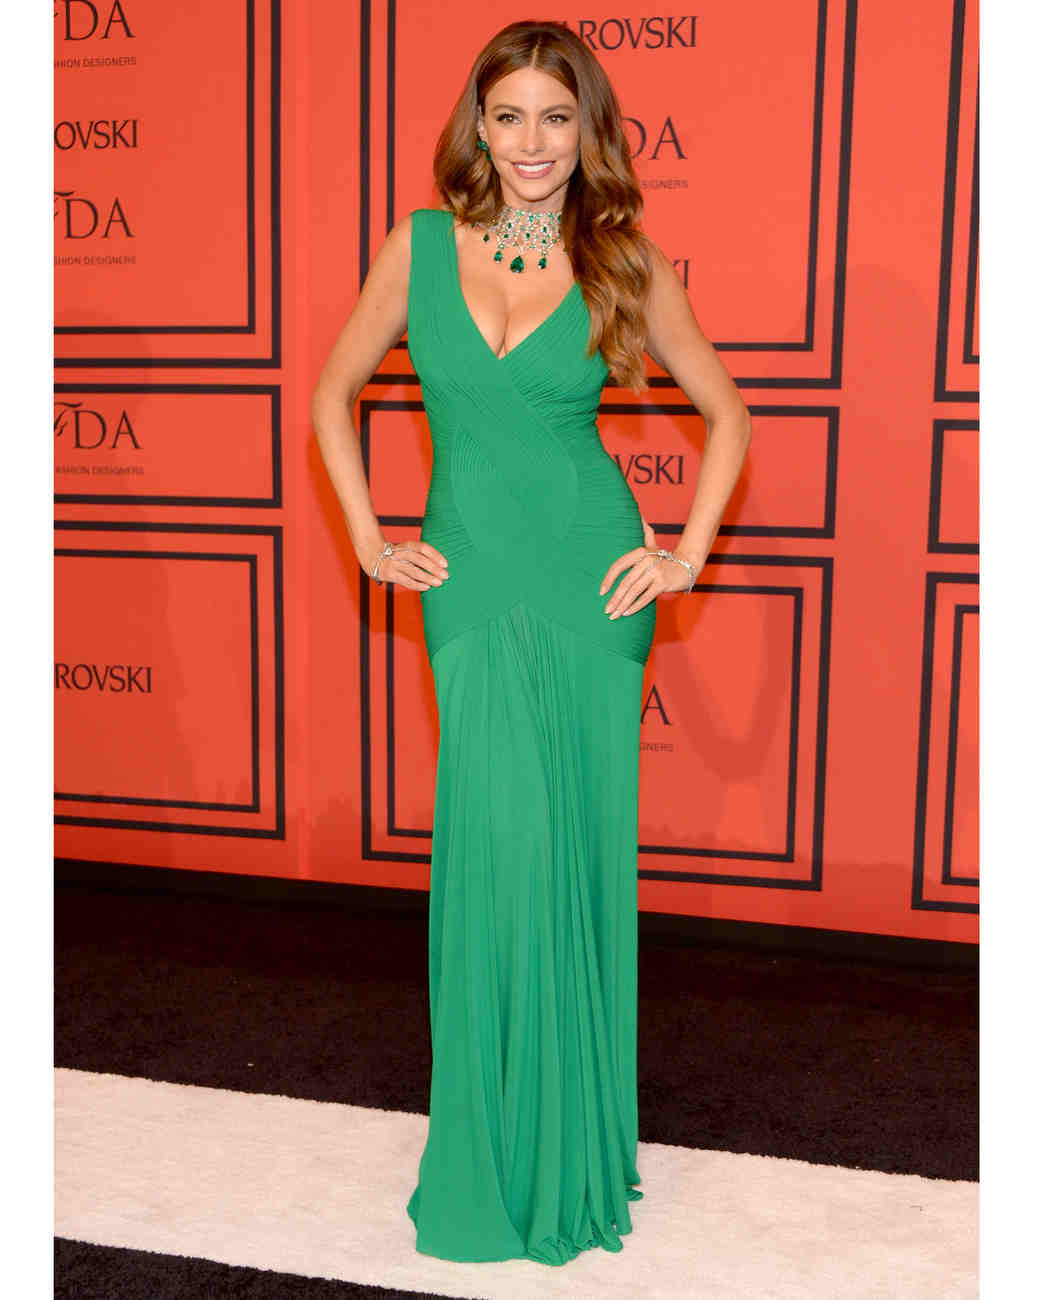 sofia-vergara-red-carpet-cfda-fashion-awards-herve-l-leroux-green-0815.jpg